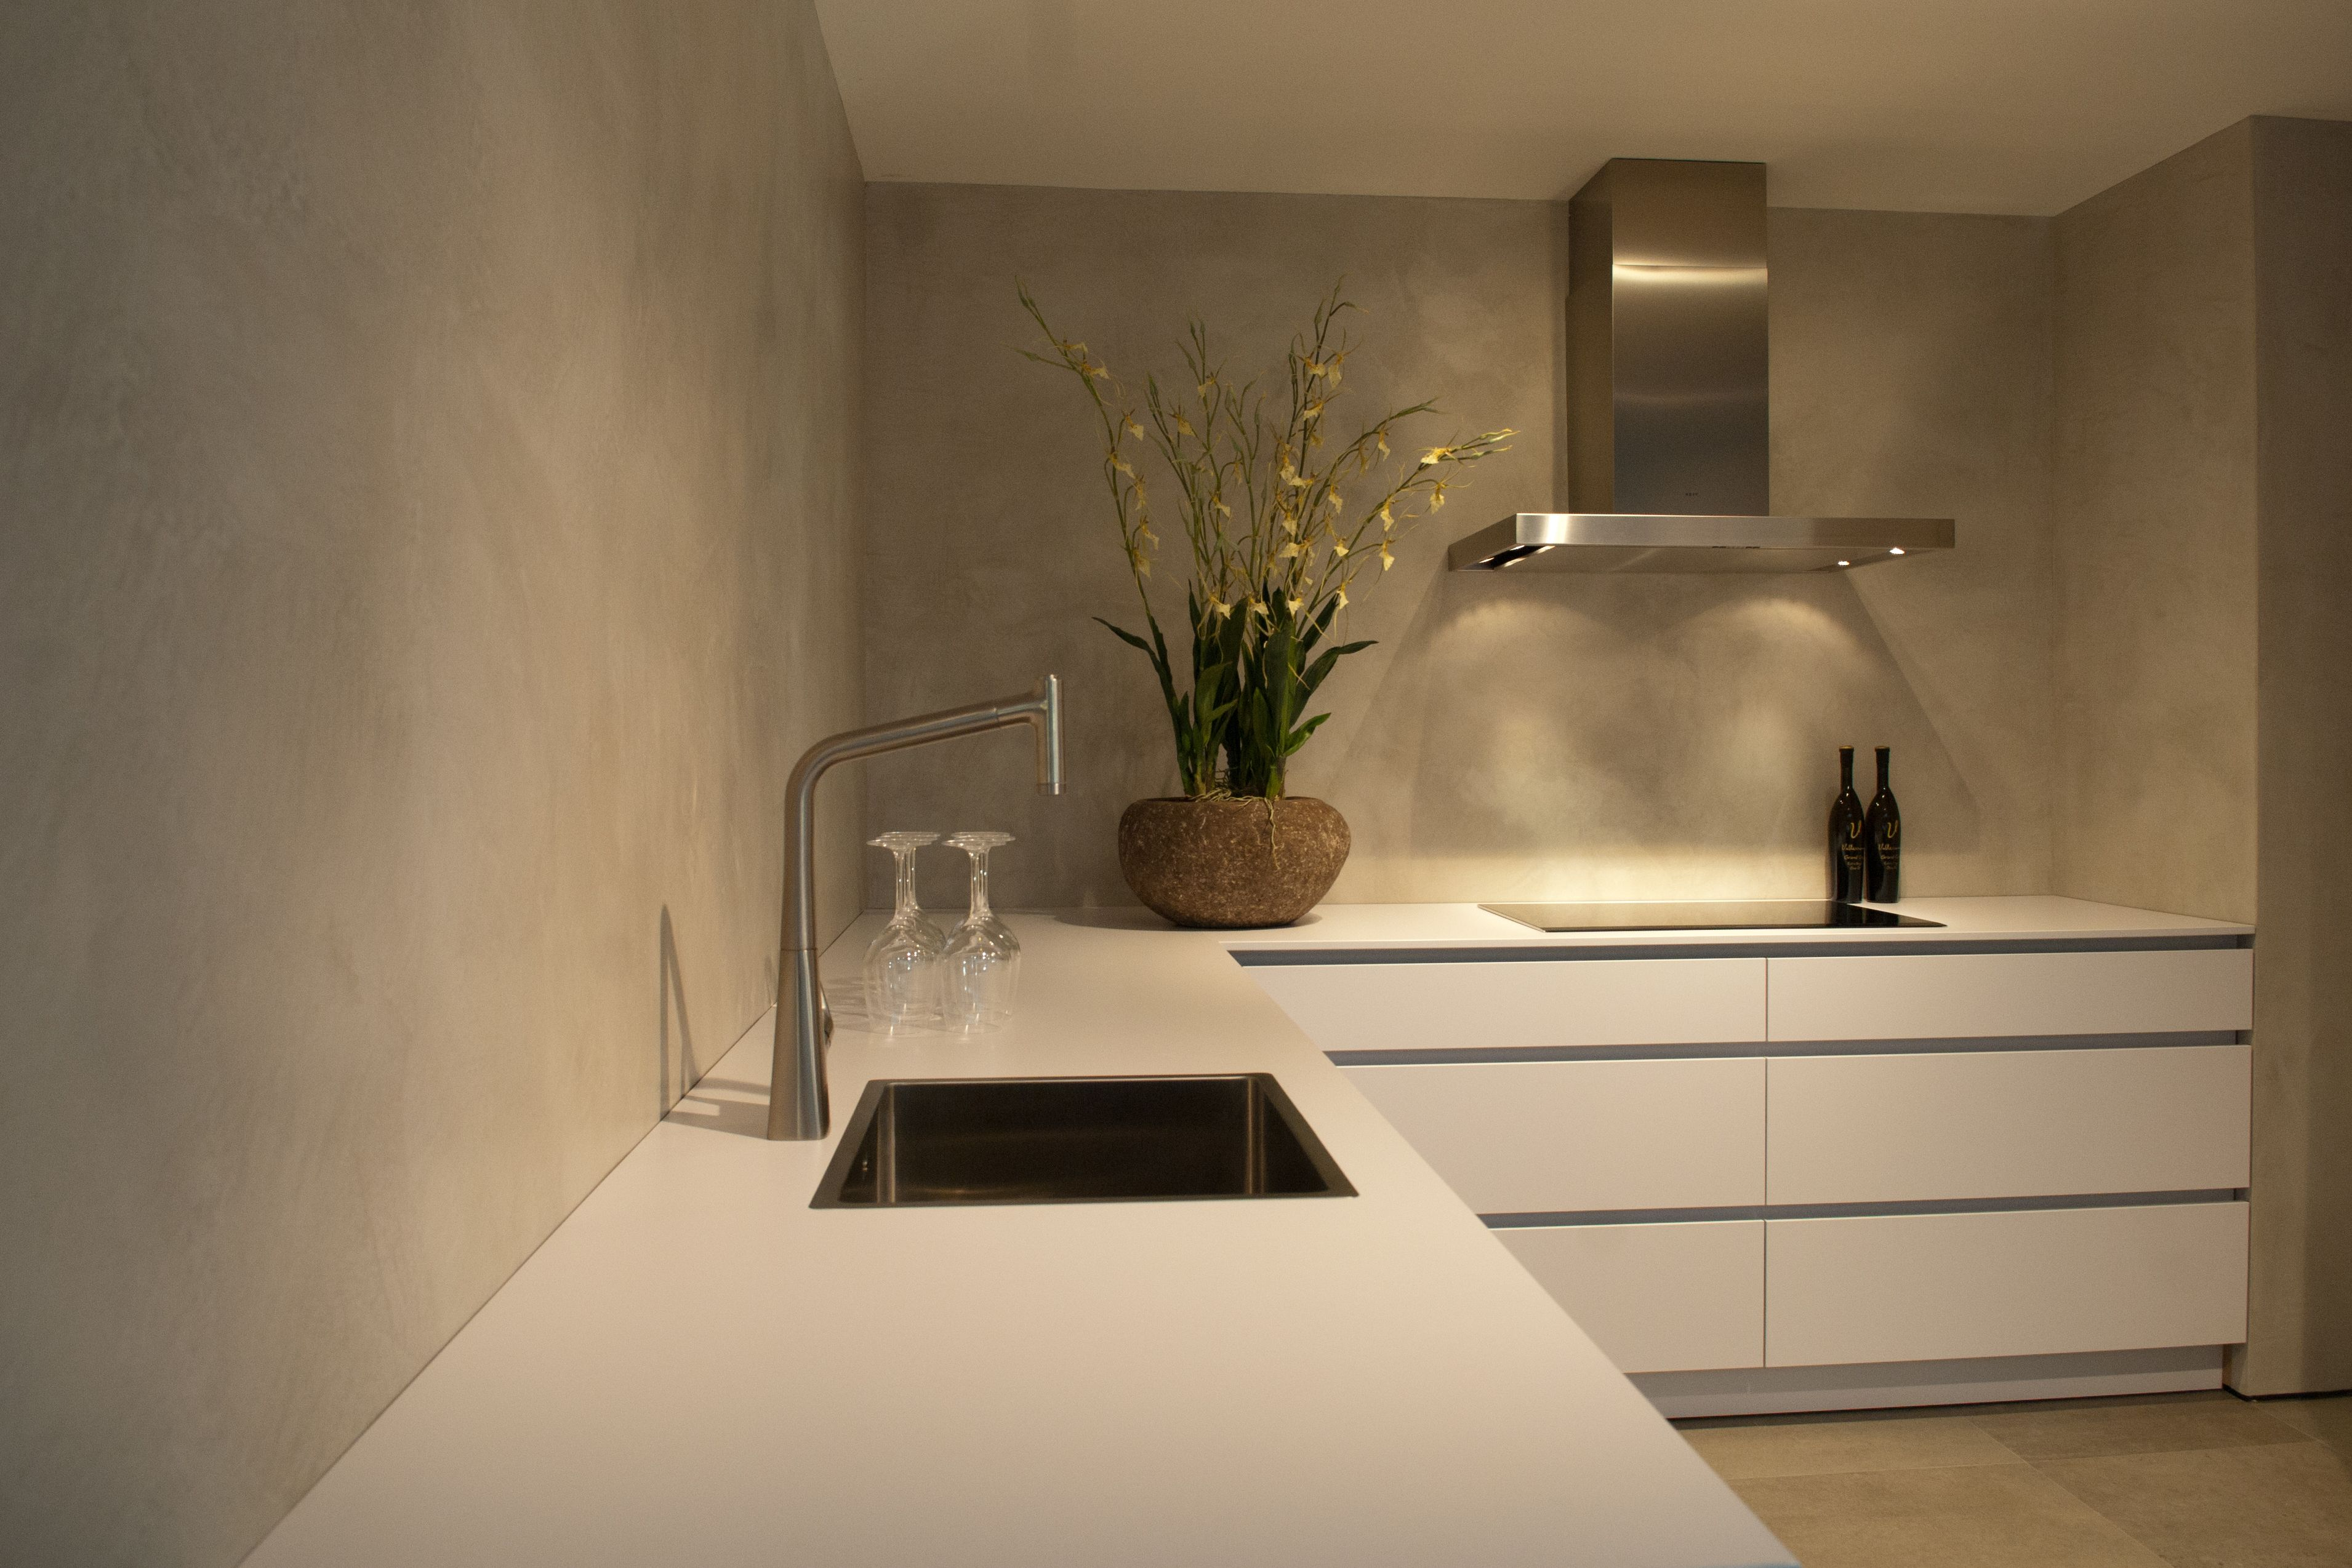 Betonstuc keukenwand keuken pinterest kitchen home kitchens